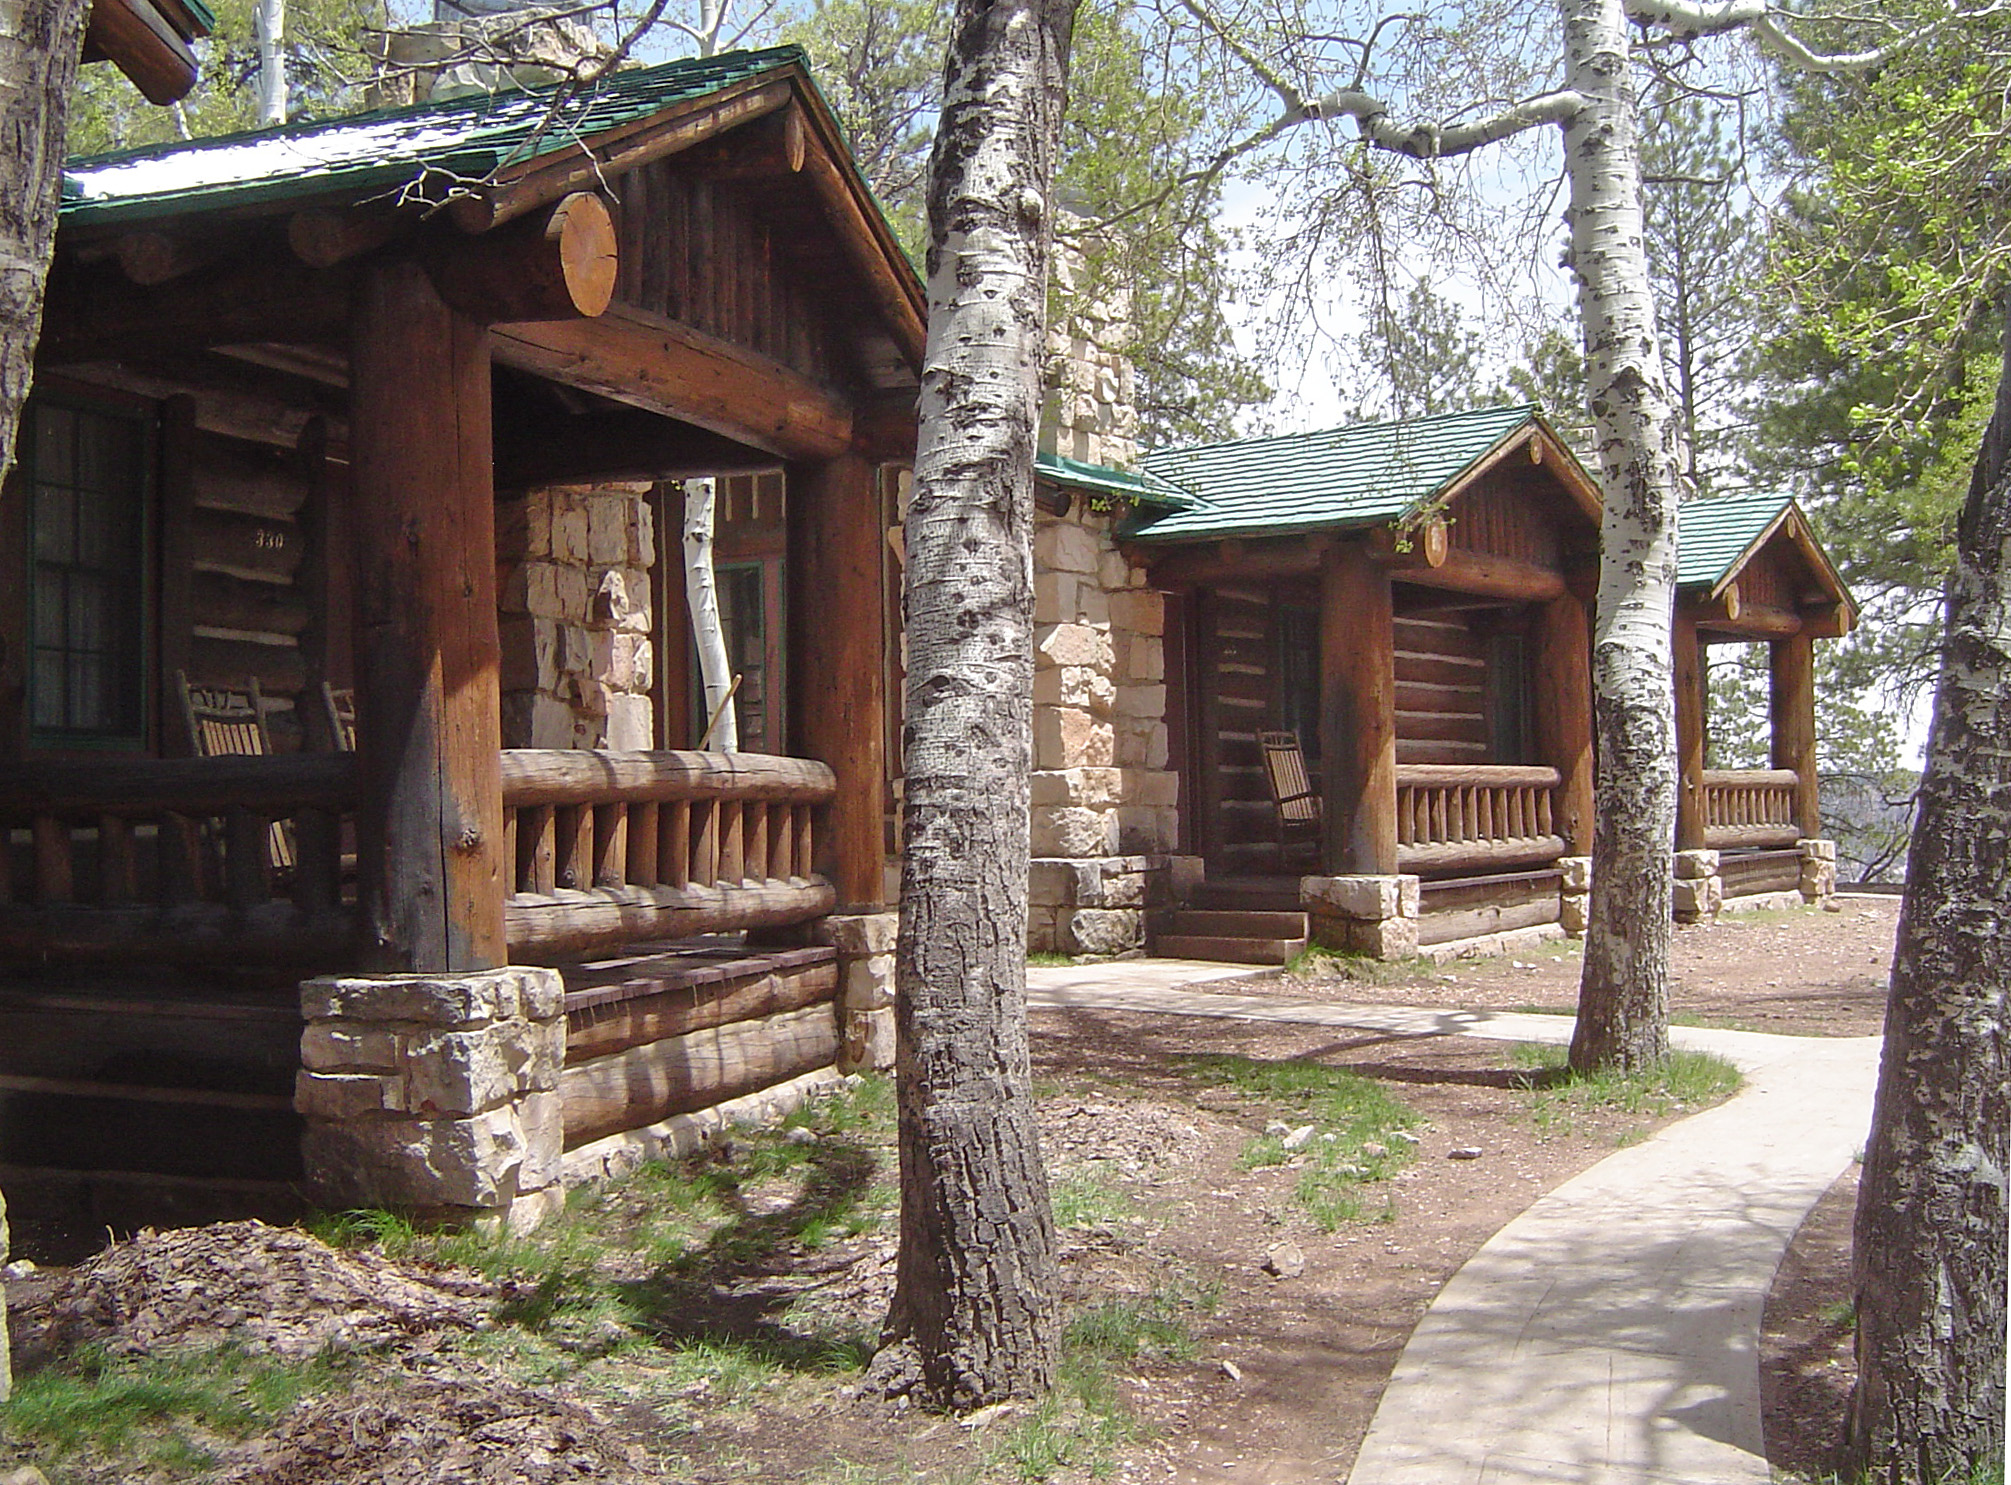 File:Grand Canyon Cabin 2